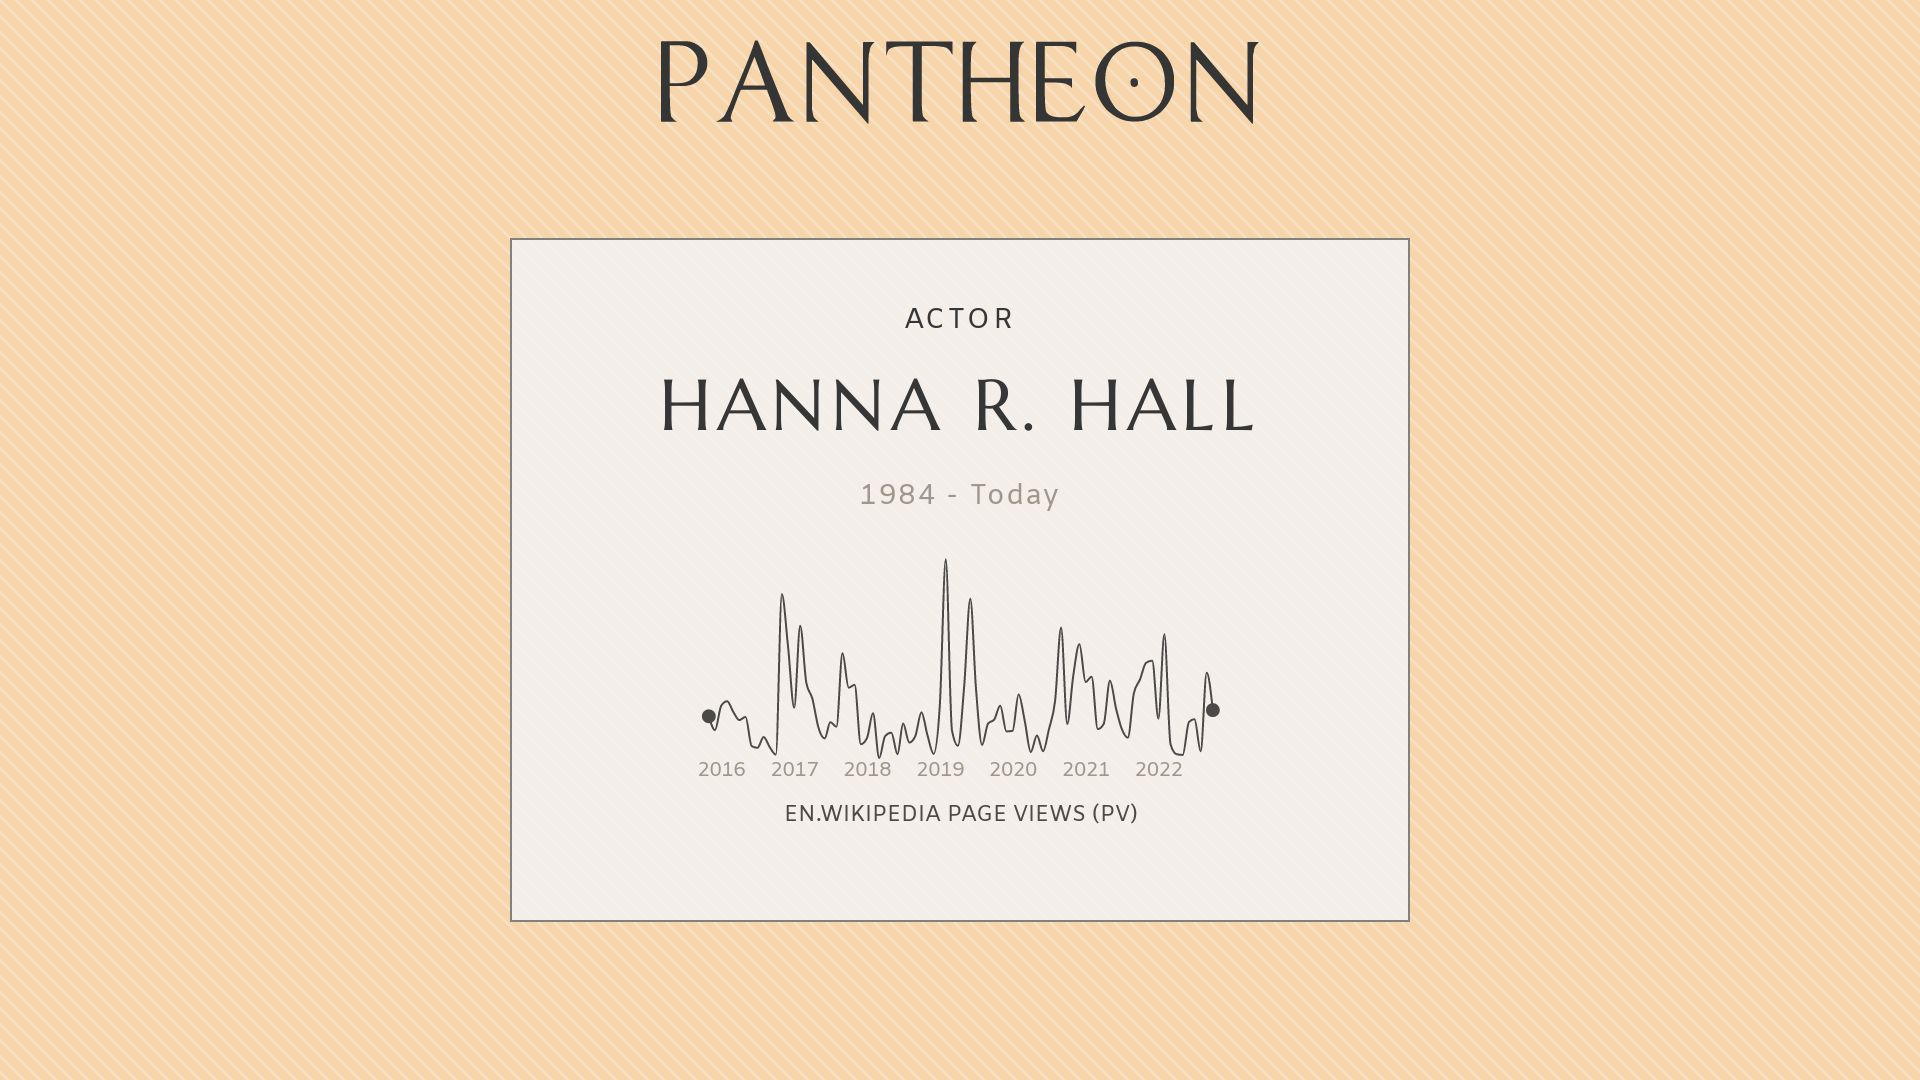 Hanna R Hall Biography American Actress Pantheon Her acting talents allowed her to land her role in forrest gump in which she made famous the phrase run, forrest! hanna r hall biography american